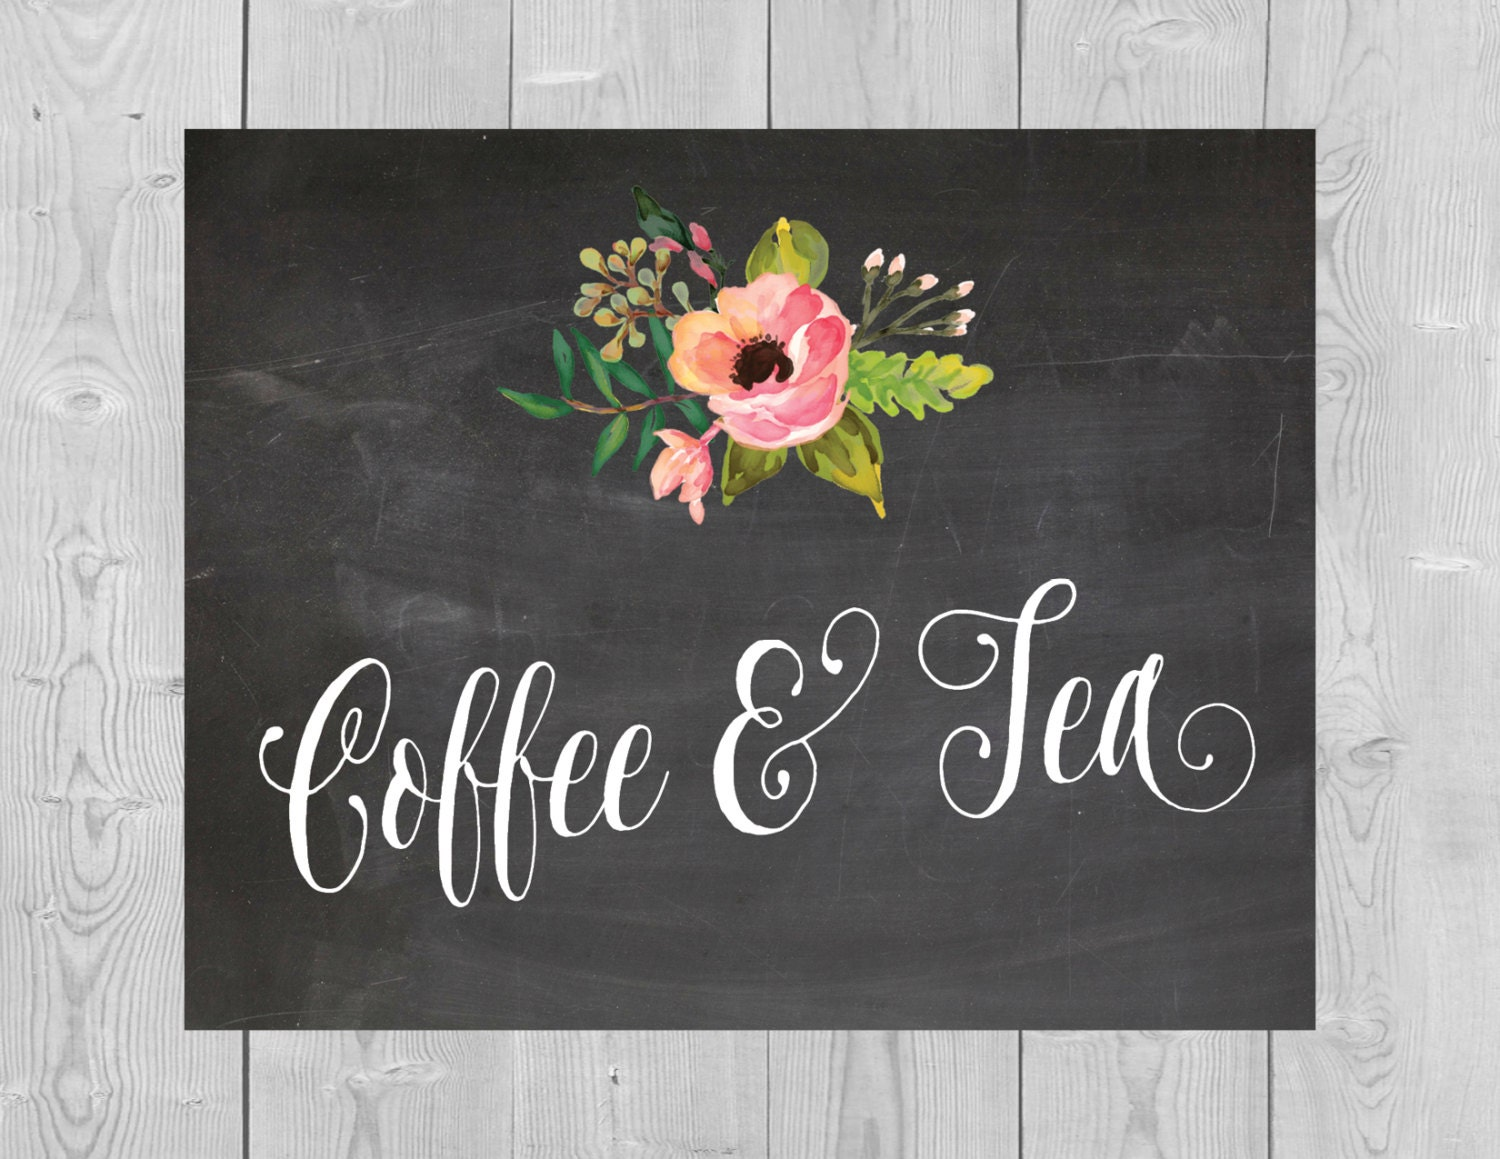 Printable Coffee & Tea Sign 5x7 8x10 Dessert Table Hot Decaf. Trade Show Literature Display Racks. Unified Communications Market. Online Merchant Account Baptist Health System. Duke University Business School. Clackamas Public Safety Training Center. Custom Trade Show Booths Bankrate Credit Card. Christian Colleges Online Home Team Insurance. Orange County Facelift Create Email Templates